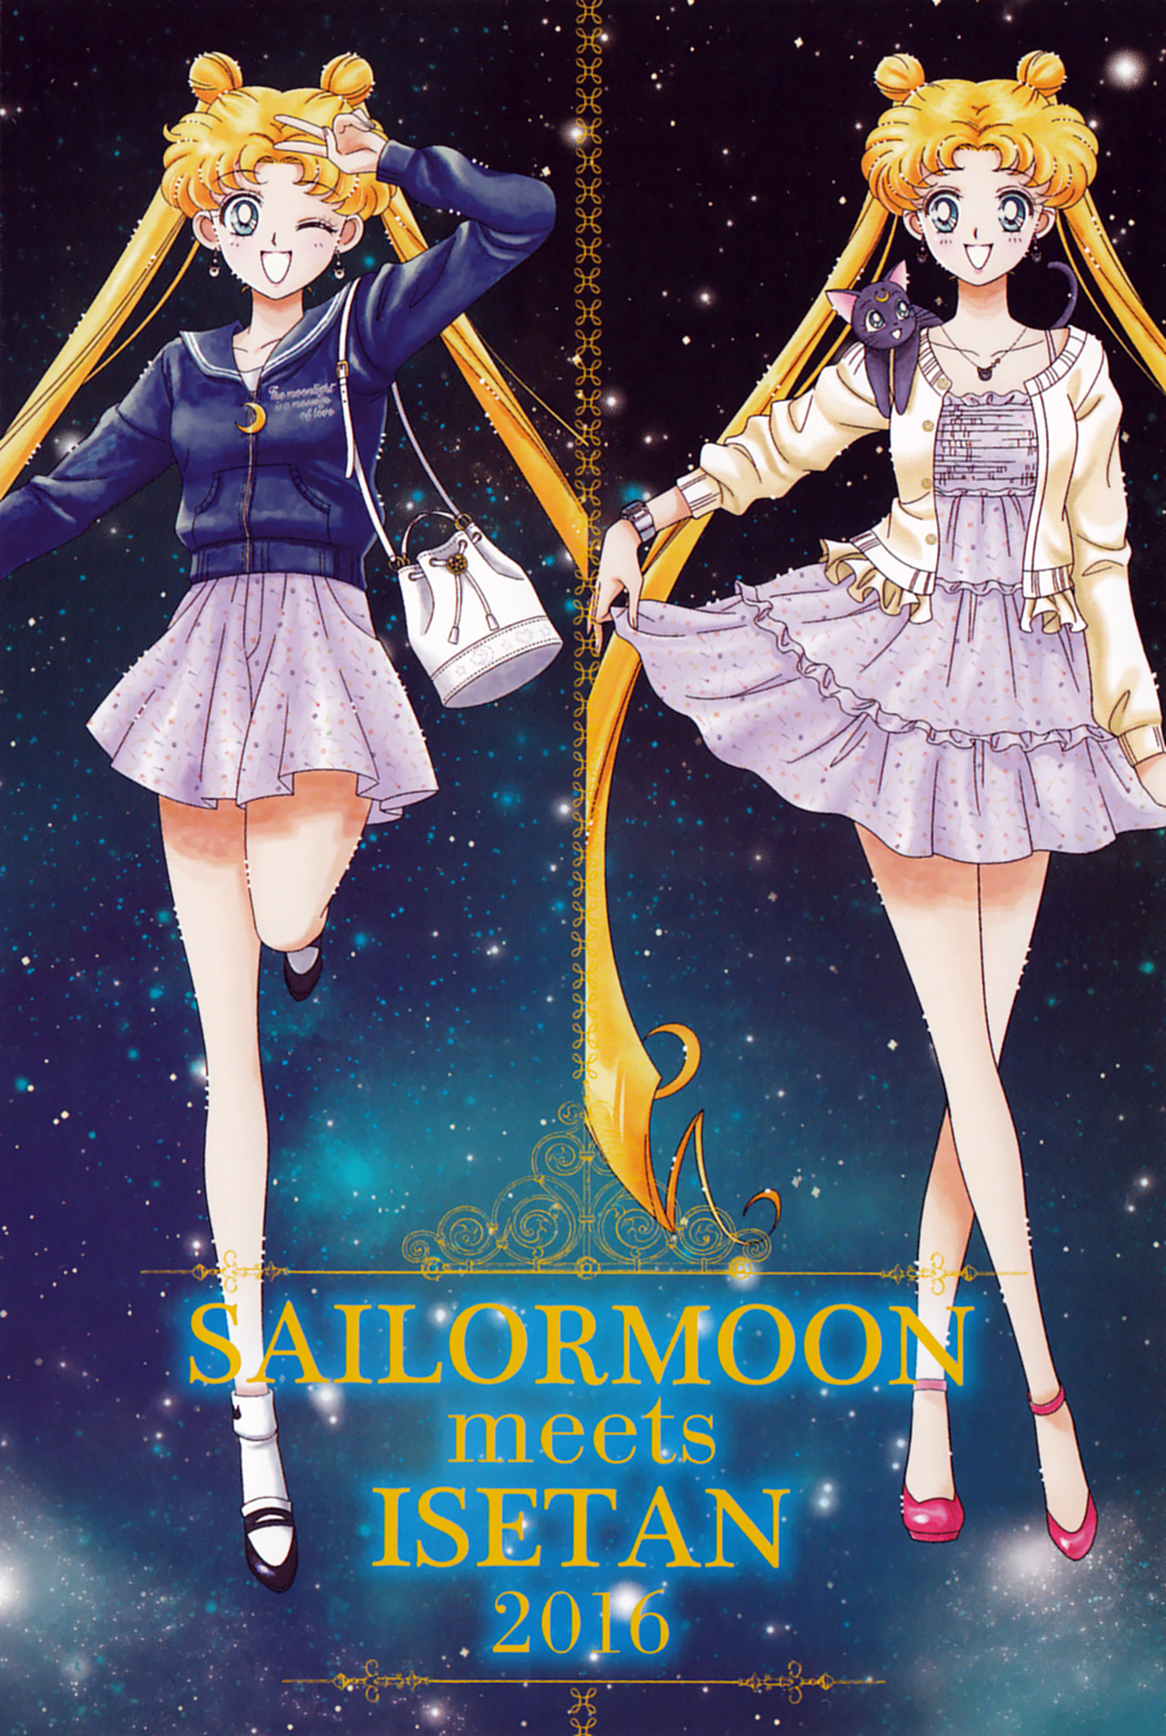 Sailor-moon-isetan-2016-postcard-02